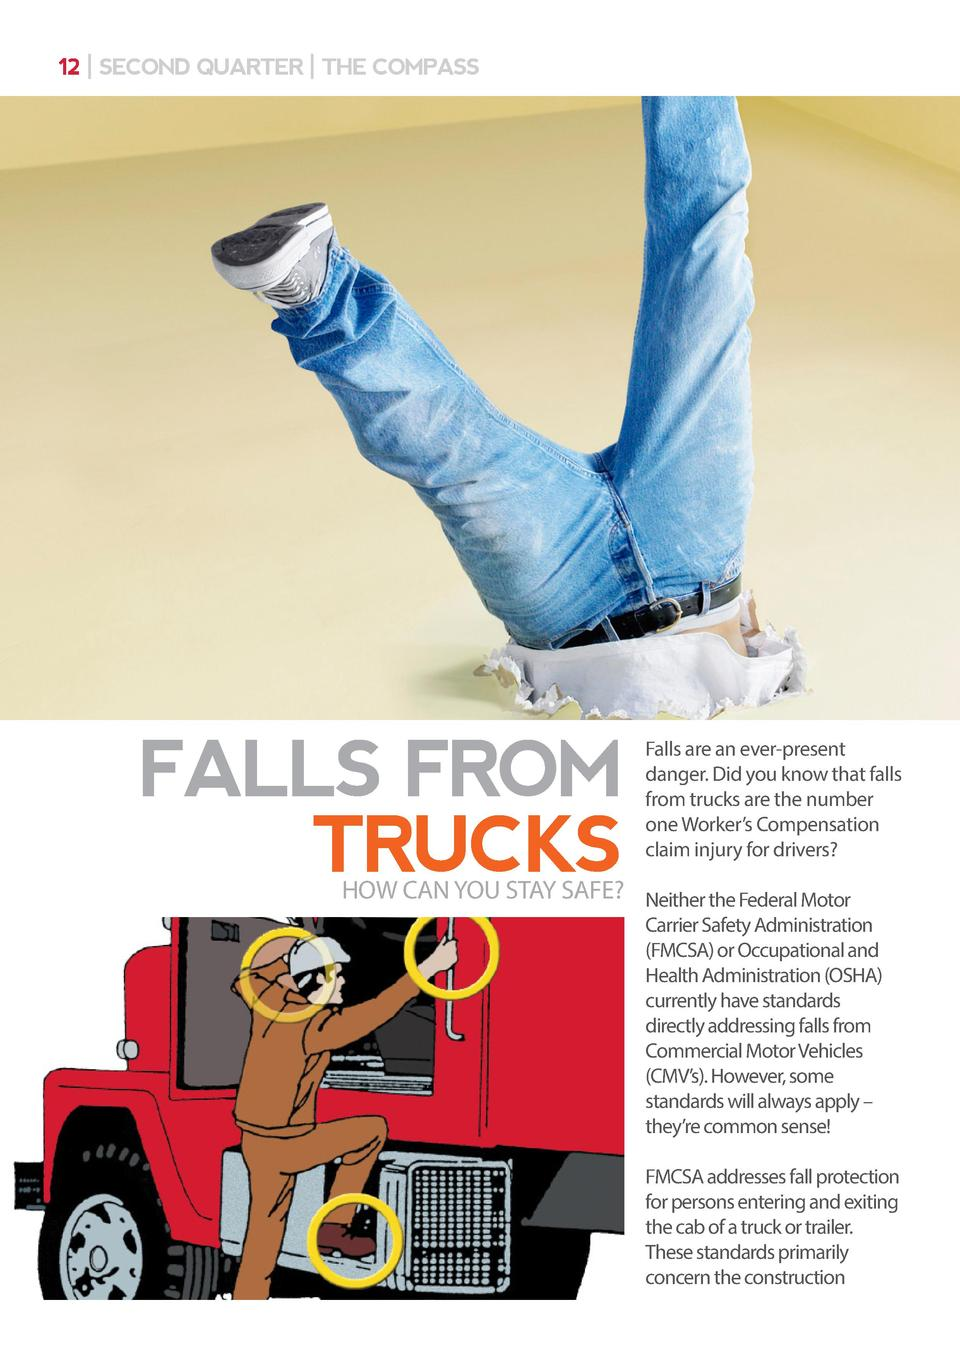 12   SECOND QUARTER   THE COMPASS  FALLS FROM TRUCKS  Falls are an ever-present danger. Did you know that falls from truck...